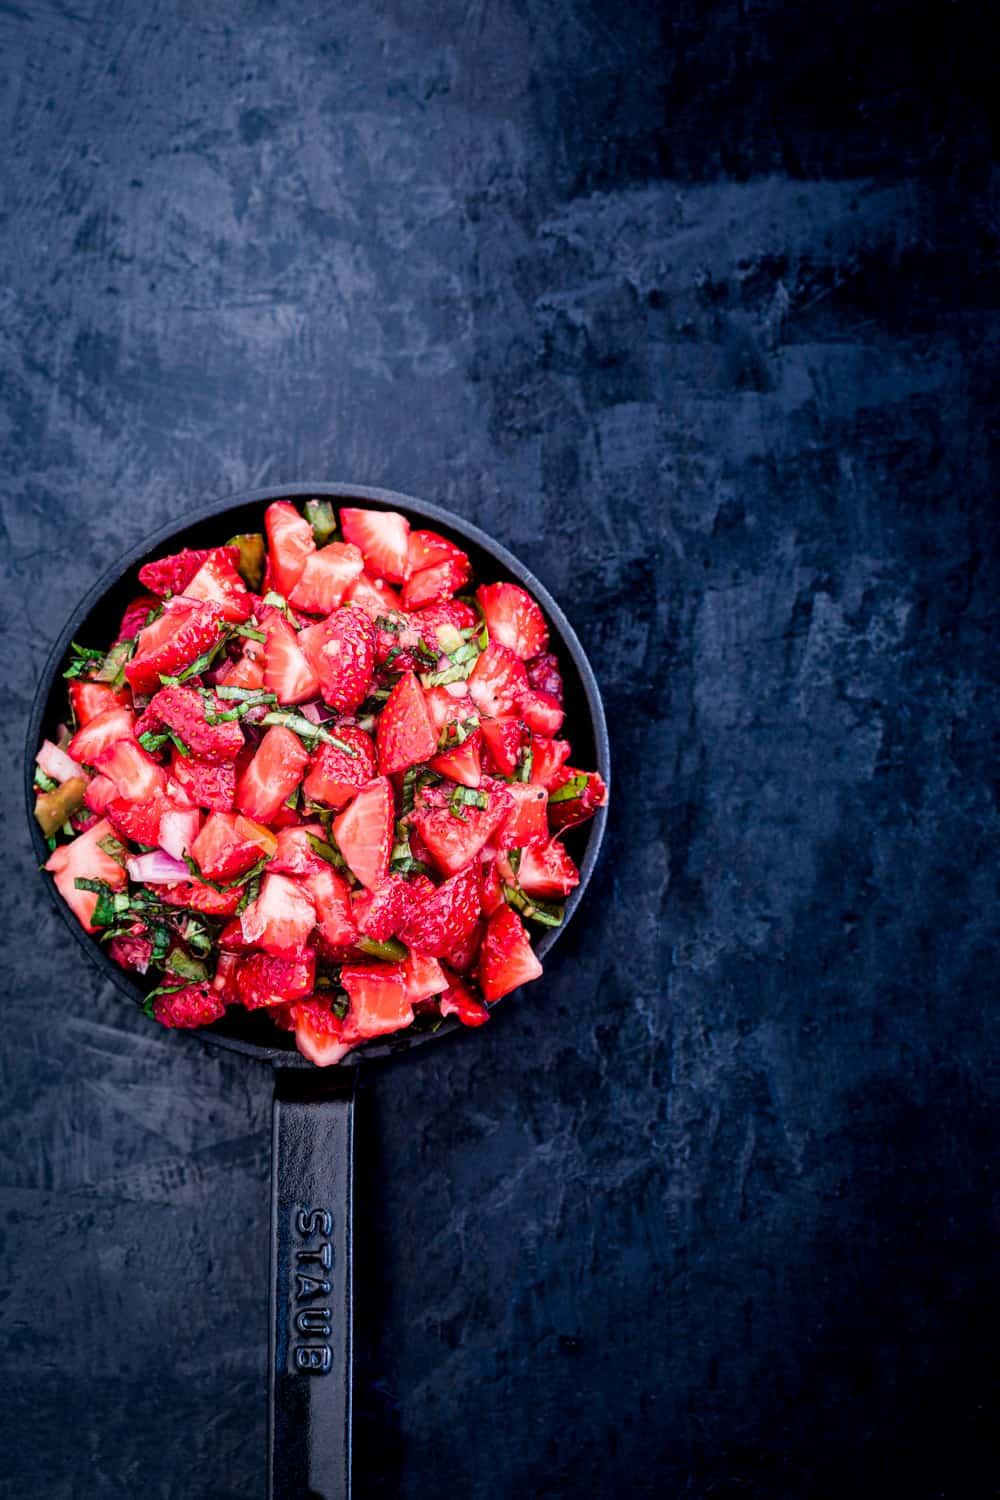 the finished strawberry salsa in a mini serving skillet on a black background.